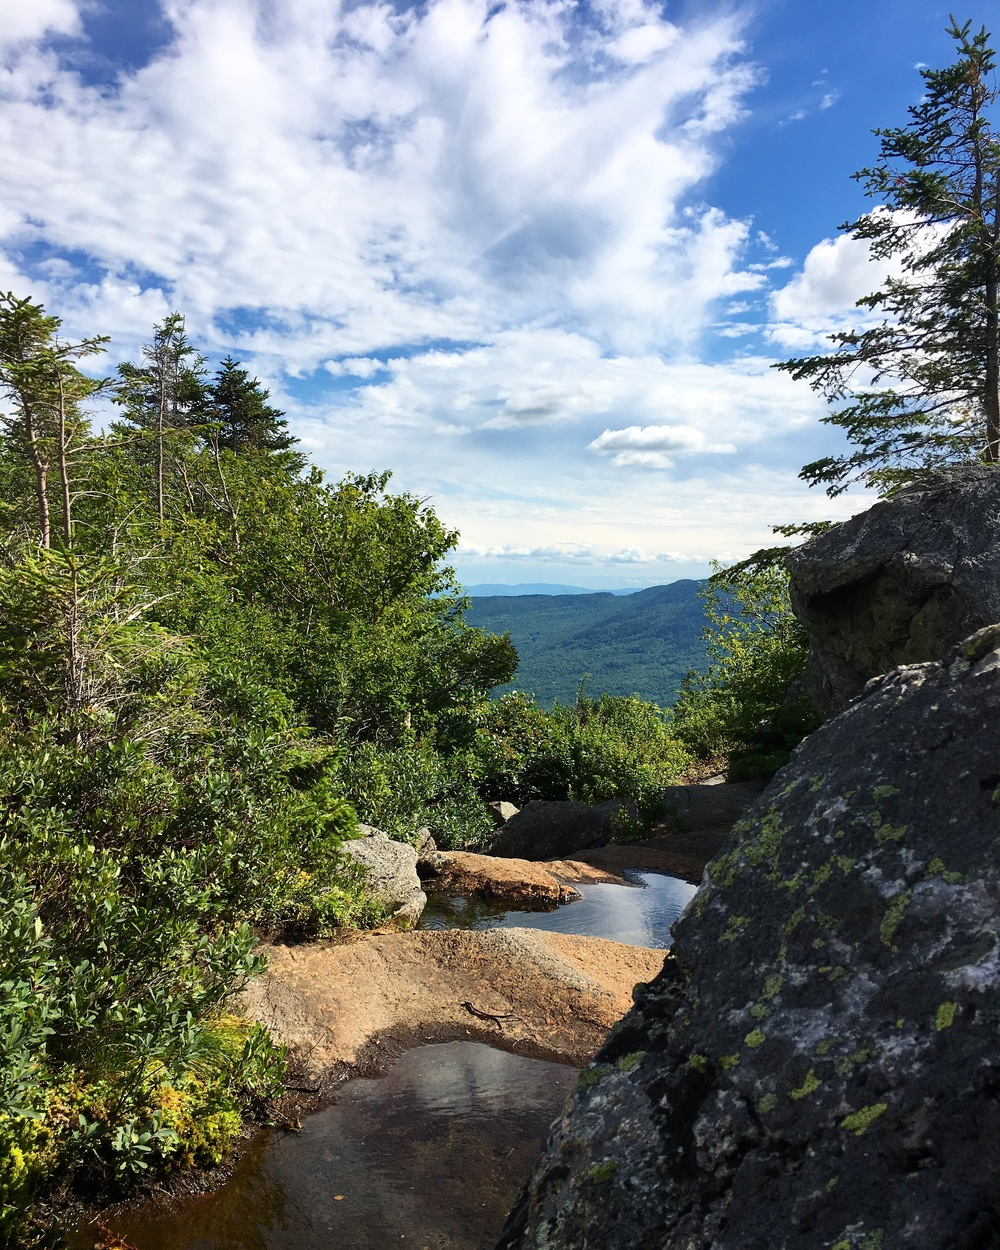 DAY 3: Appreciating the View Atop Tumbledown Mountain